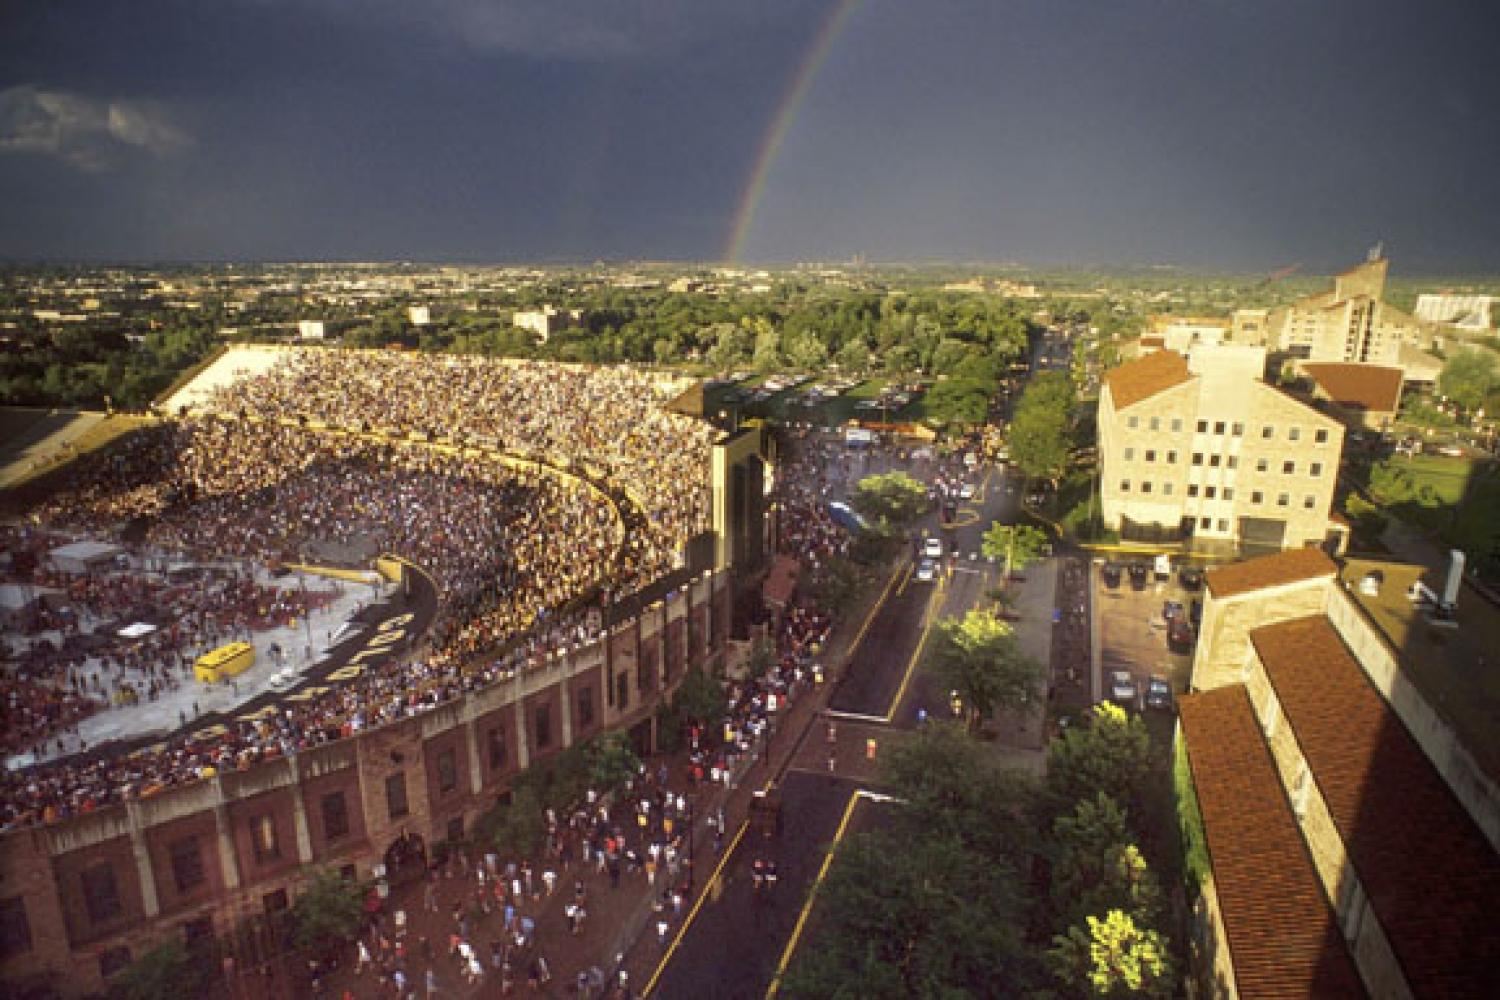 The University of Colorado football team has won both a National Championship (1990) and a Heisman Trophy (1994)